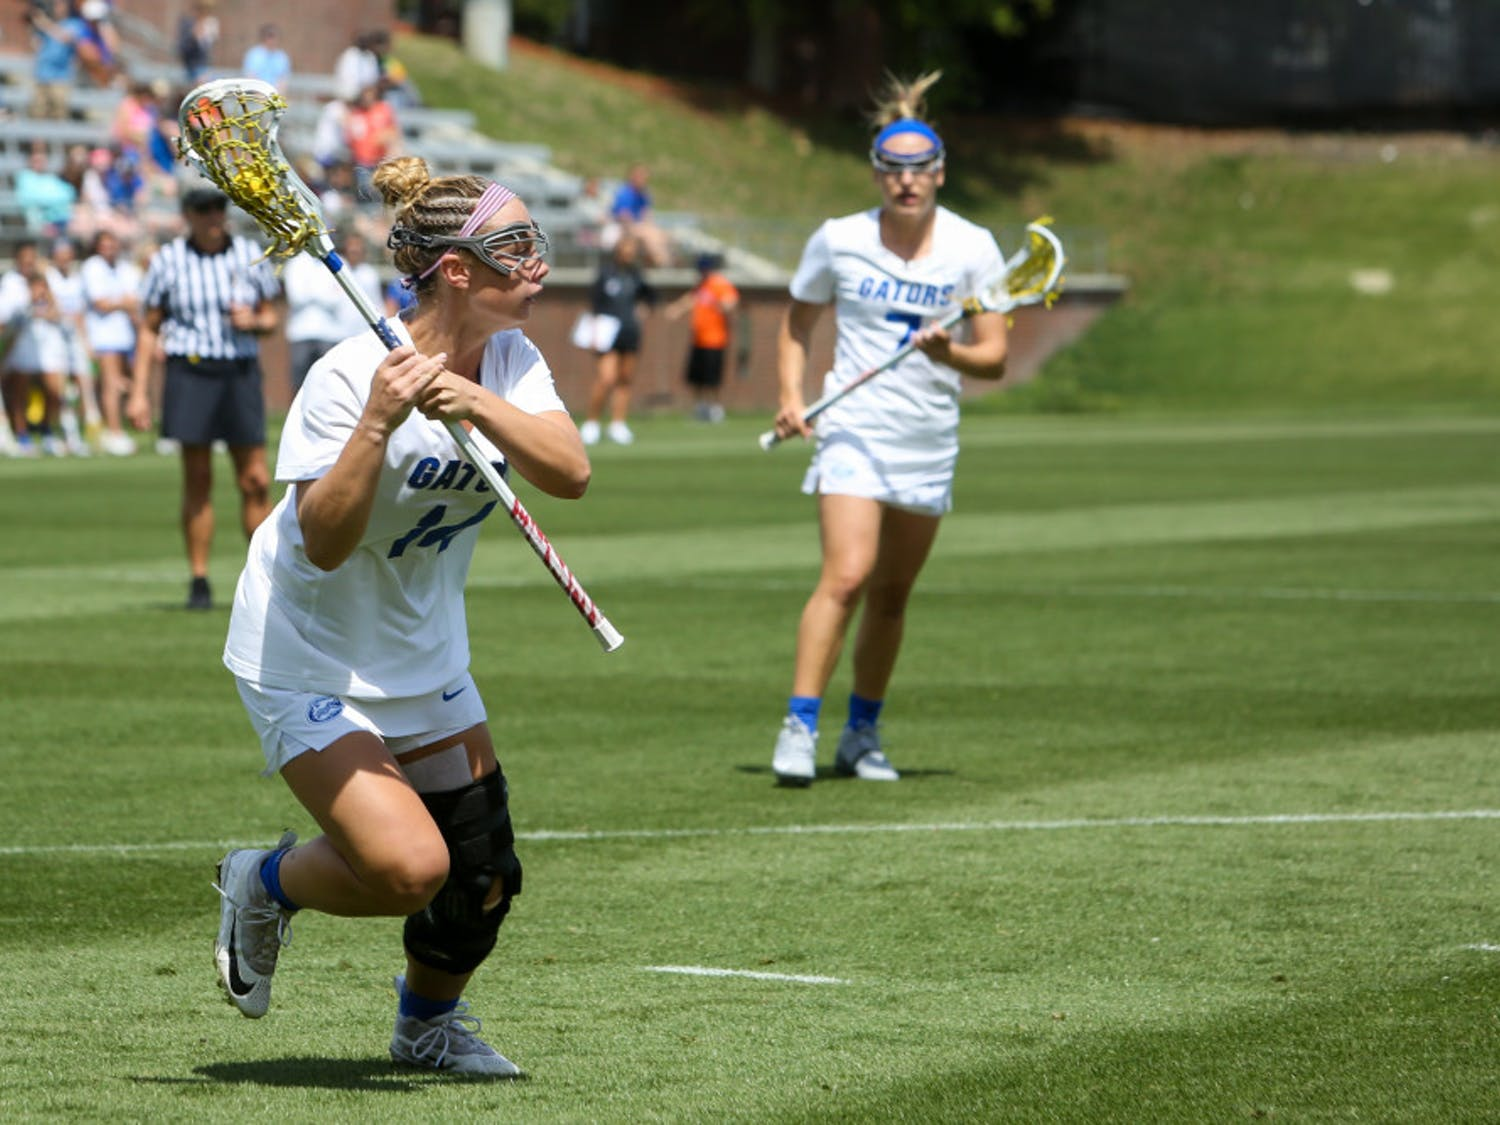 Senior Lindsey Ronbeck led the way with six goals as Florida won its first American Athletic Conference Tournament championship on Saturday.